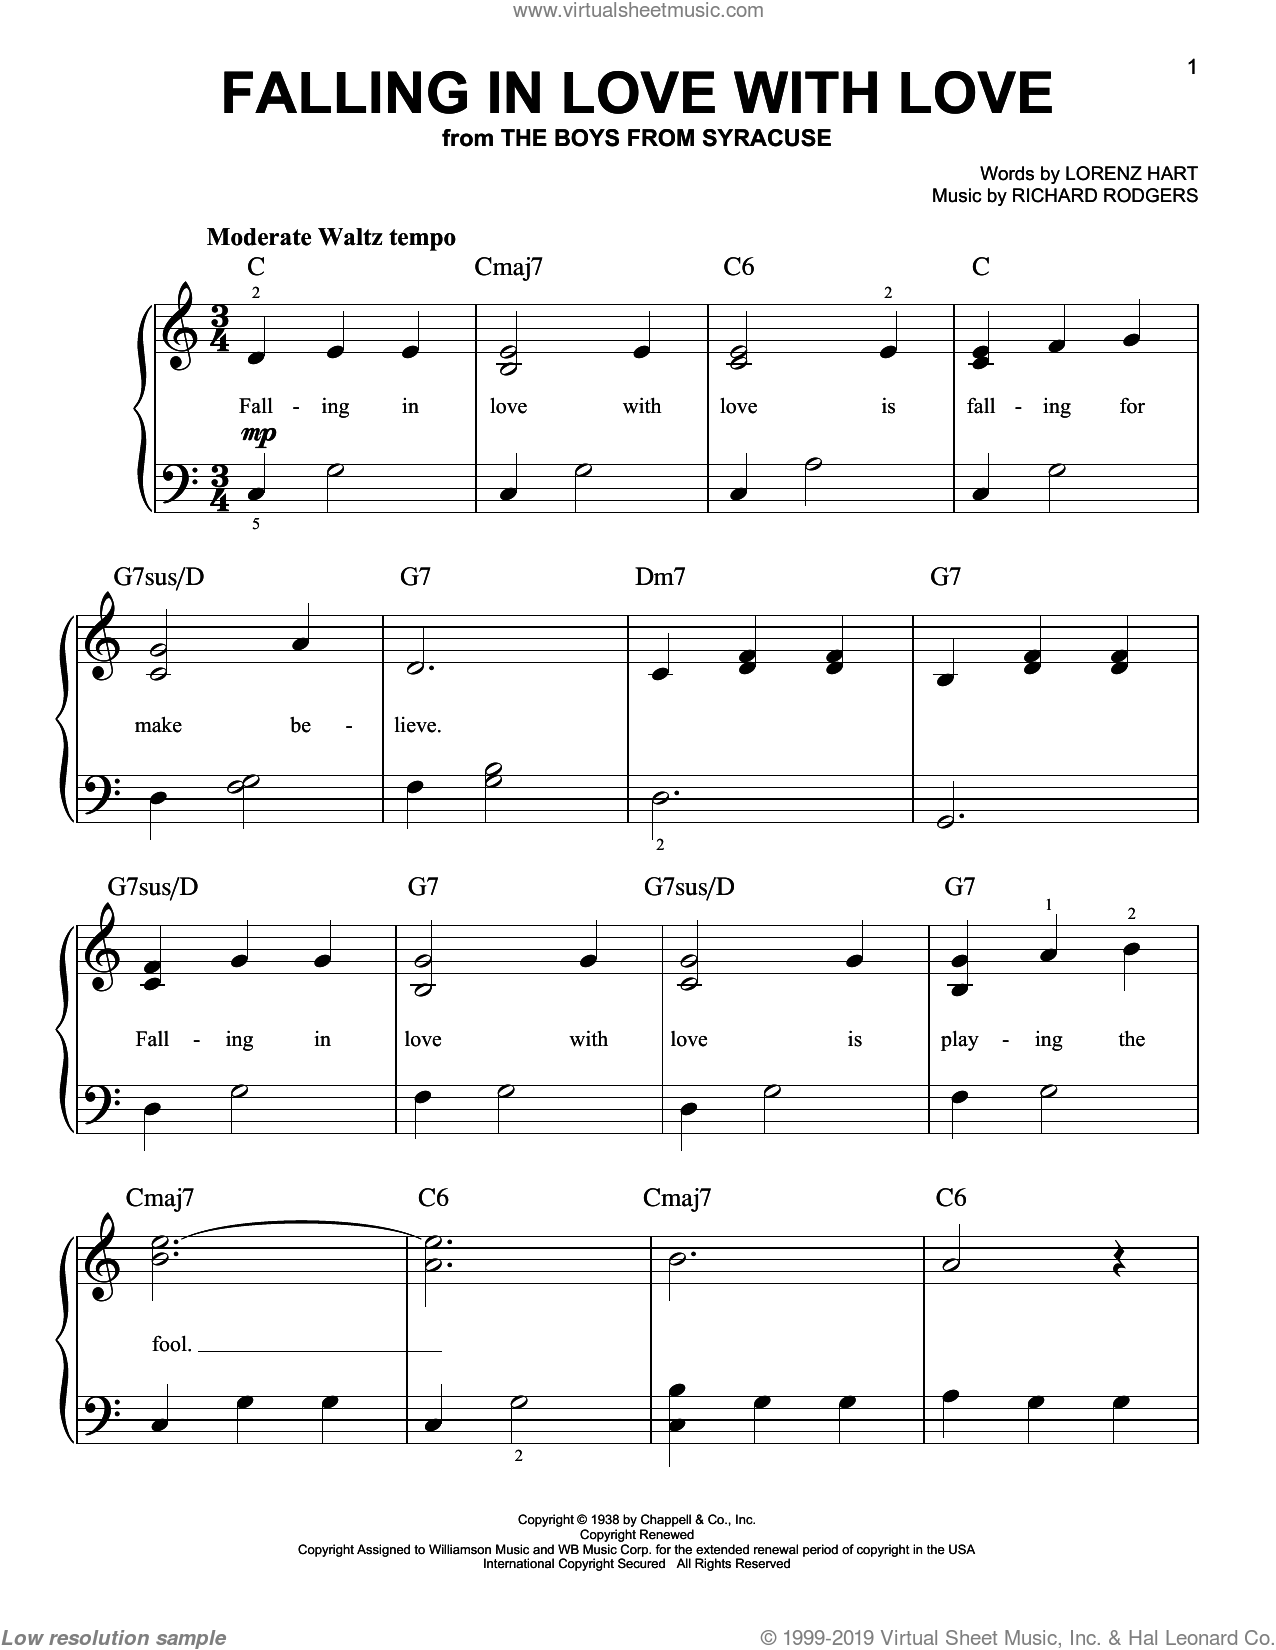 Falling In Love With Love sheet music for piano solo by Richard Rodgers, Rodgers & Hart and Lorenz Hart. Score Image Preview.